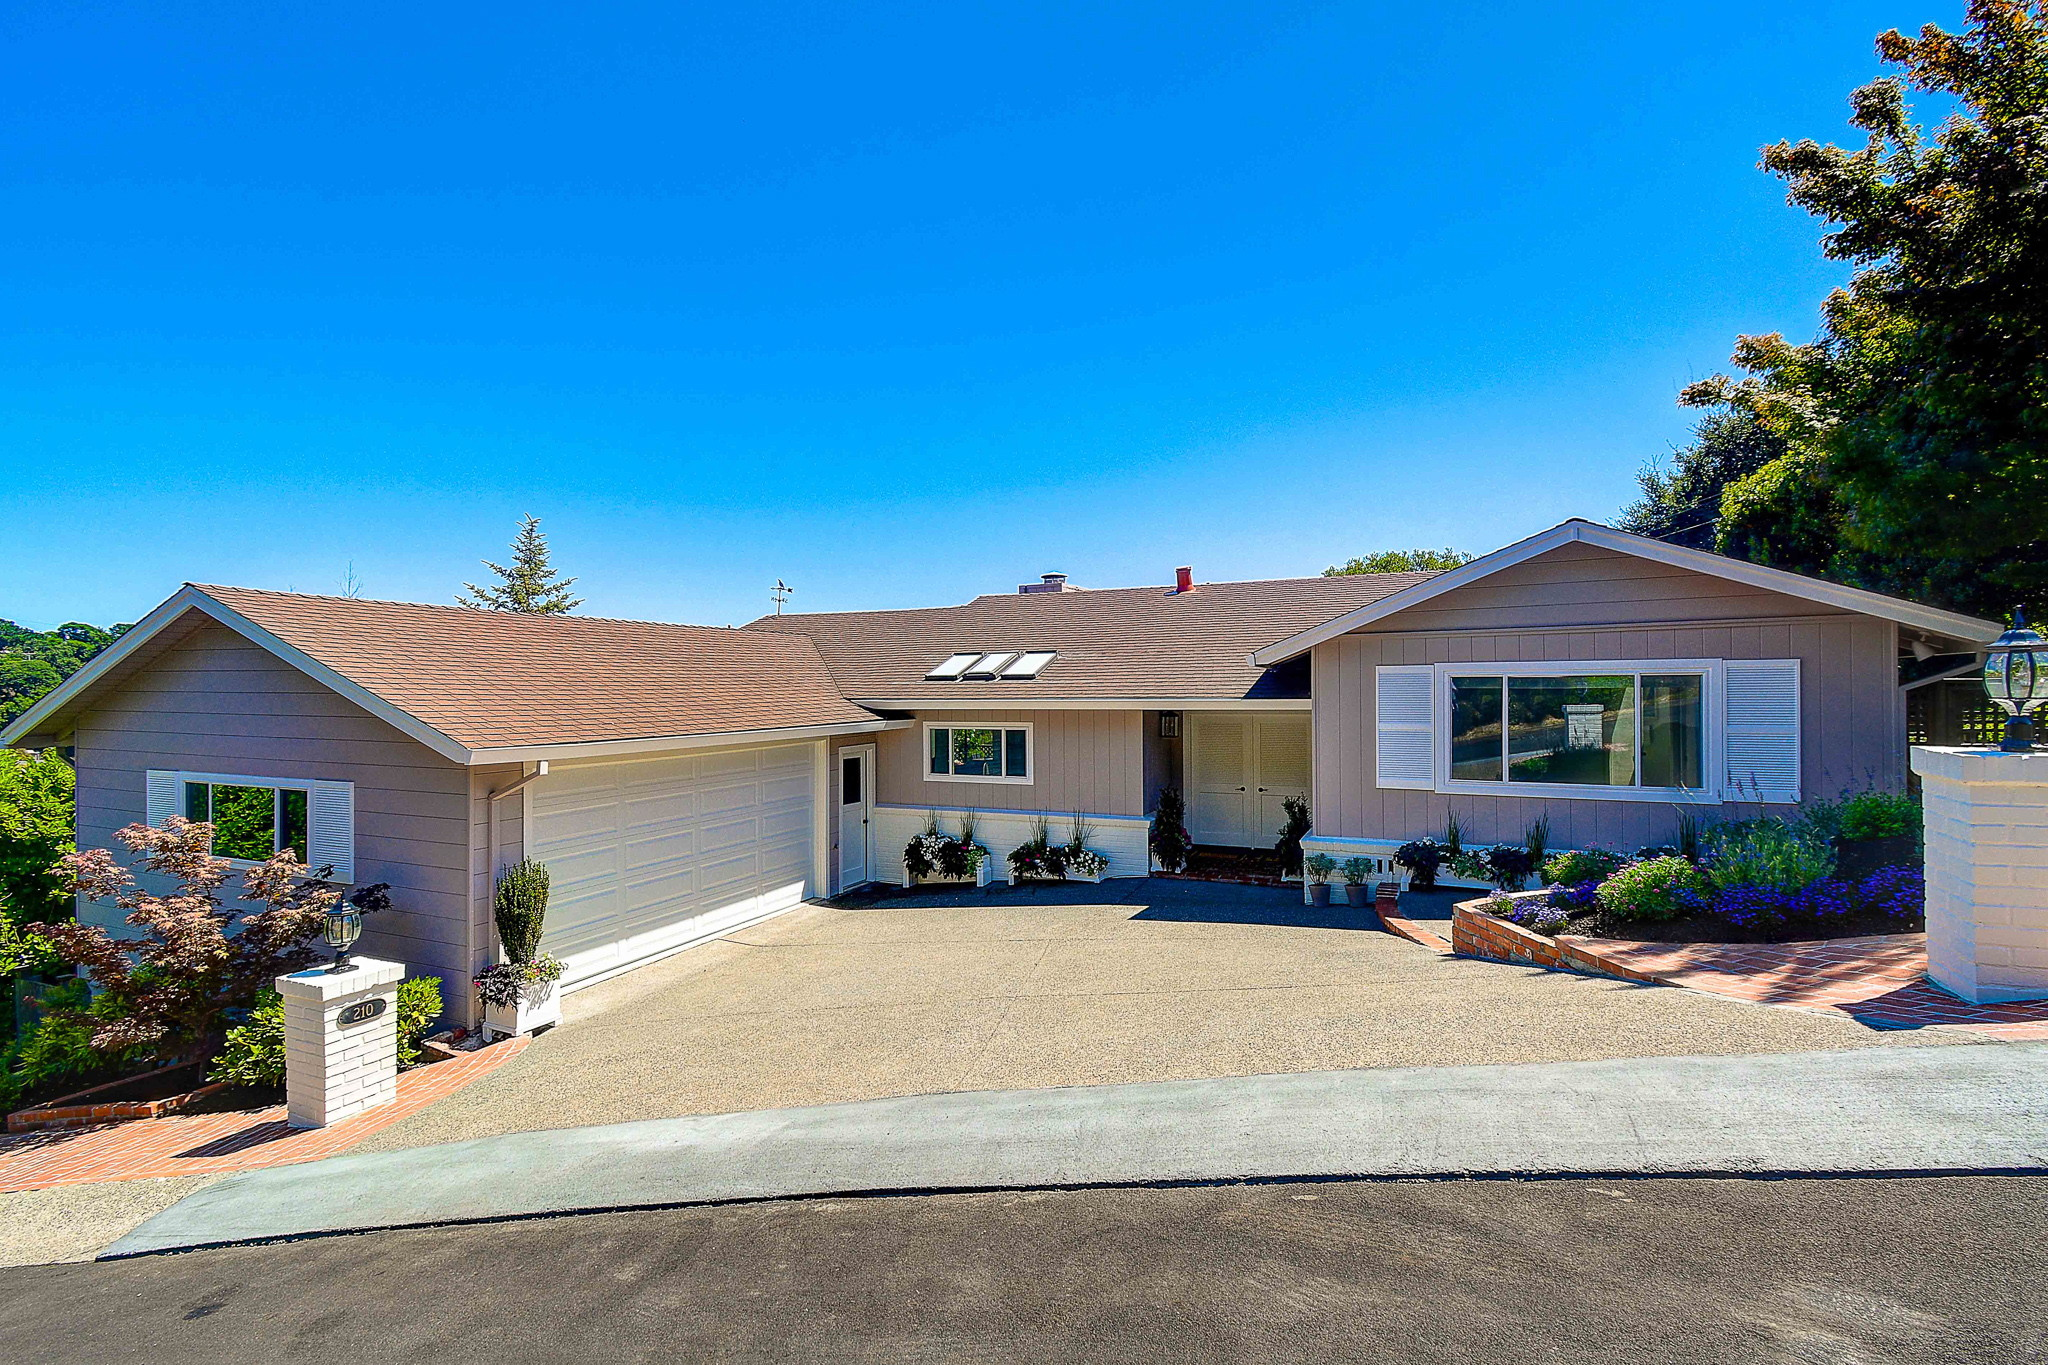 210 Bretano Way-71Greenbrae Real Estate - Listed by Team Own Marin County .jpg